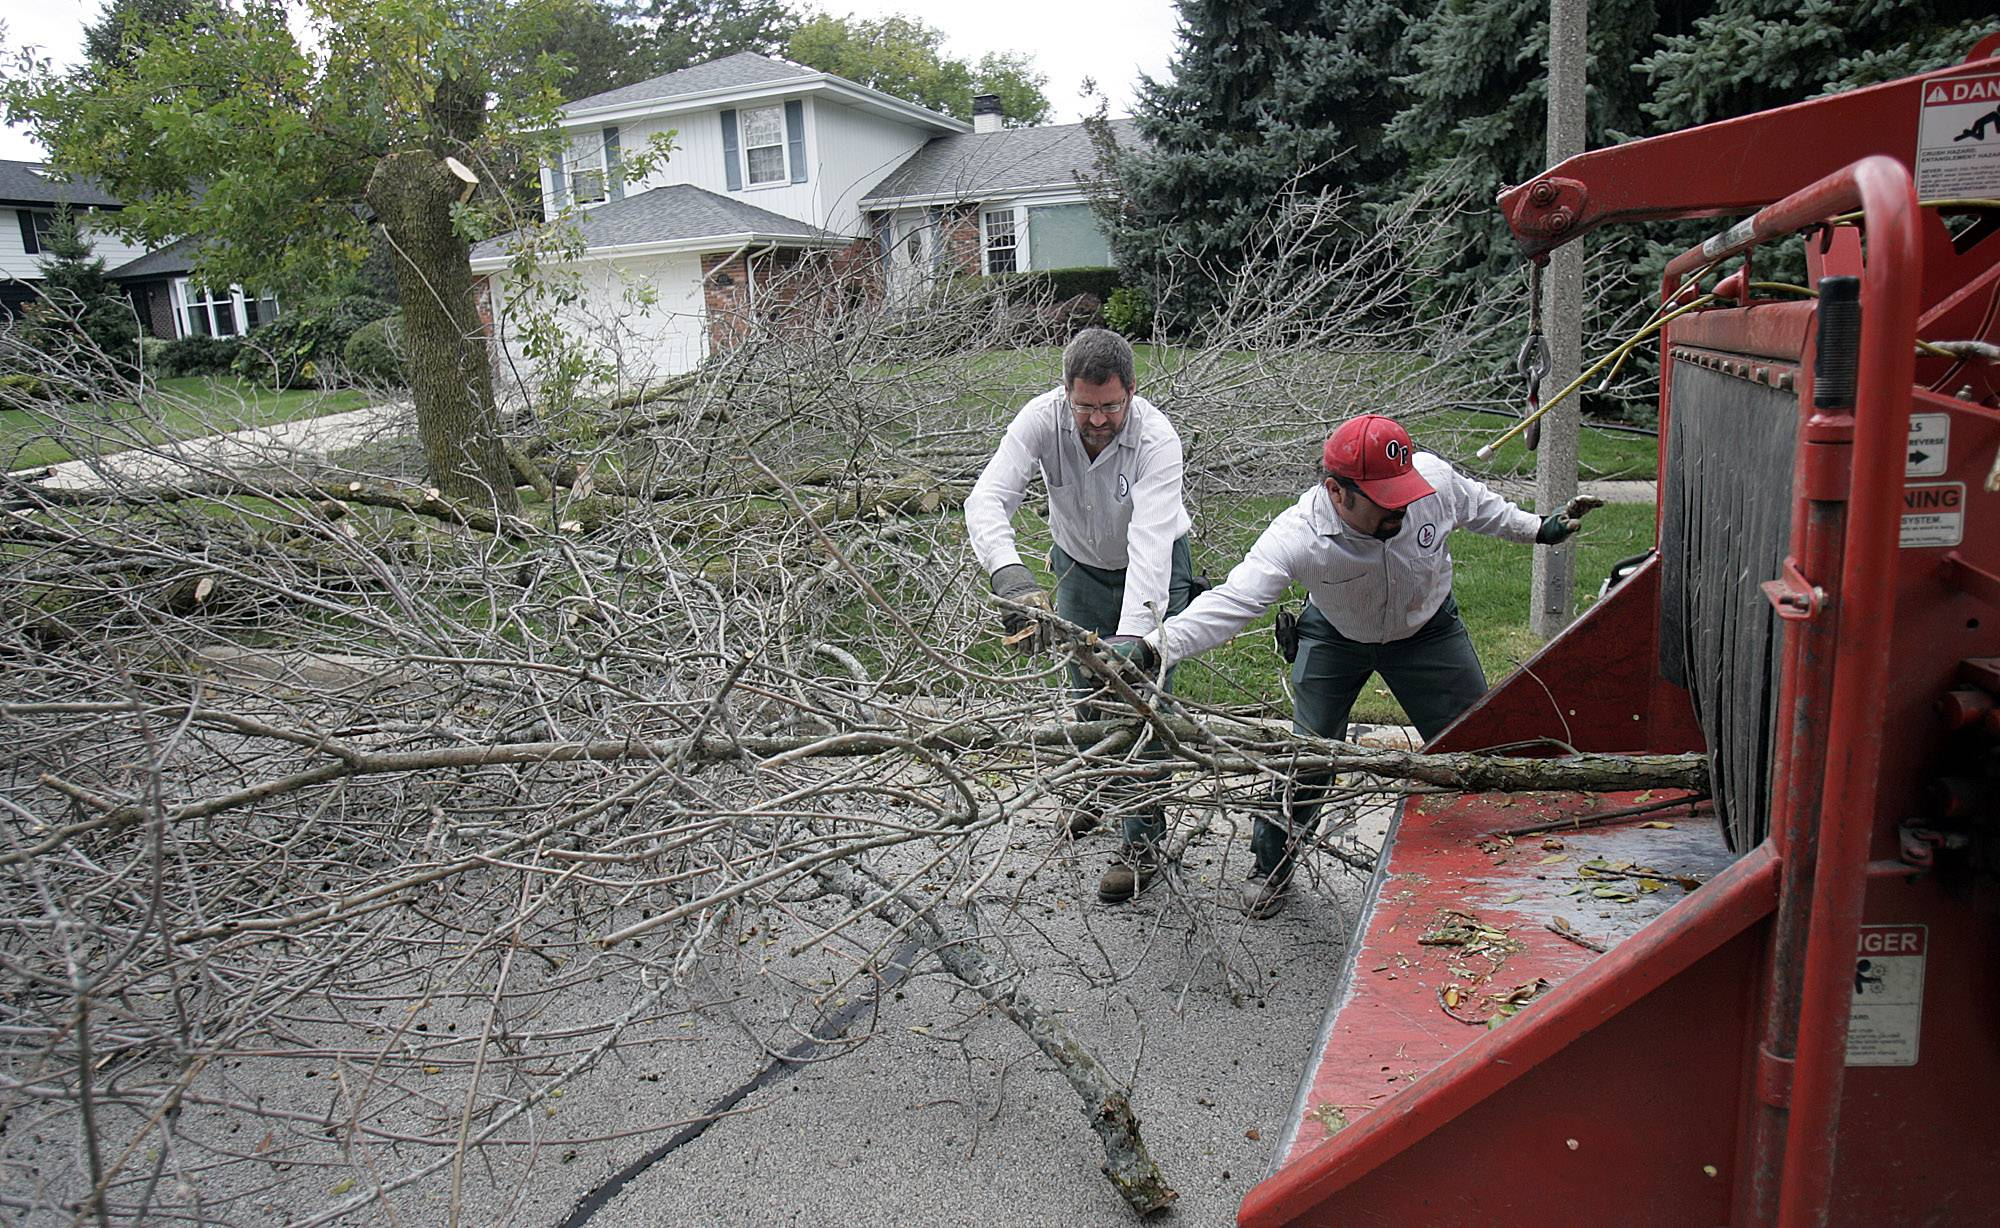 Crews cut down Ash trees on Mayfair Drive in Libertyville in 2010.